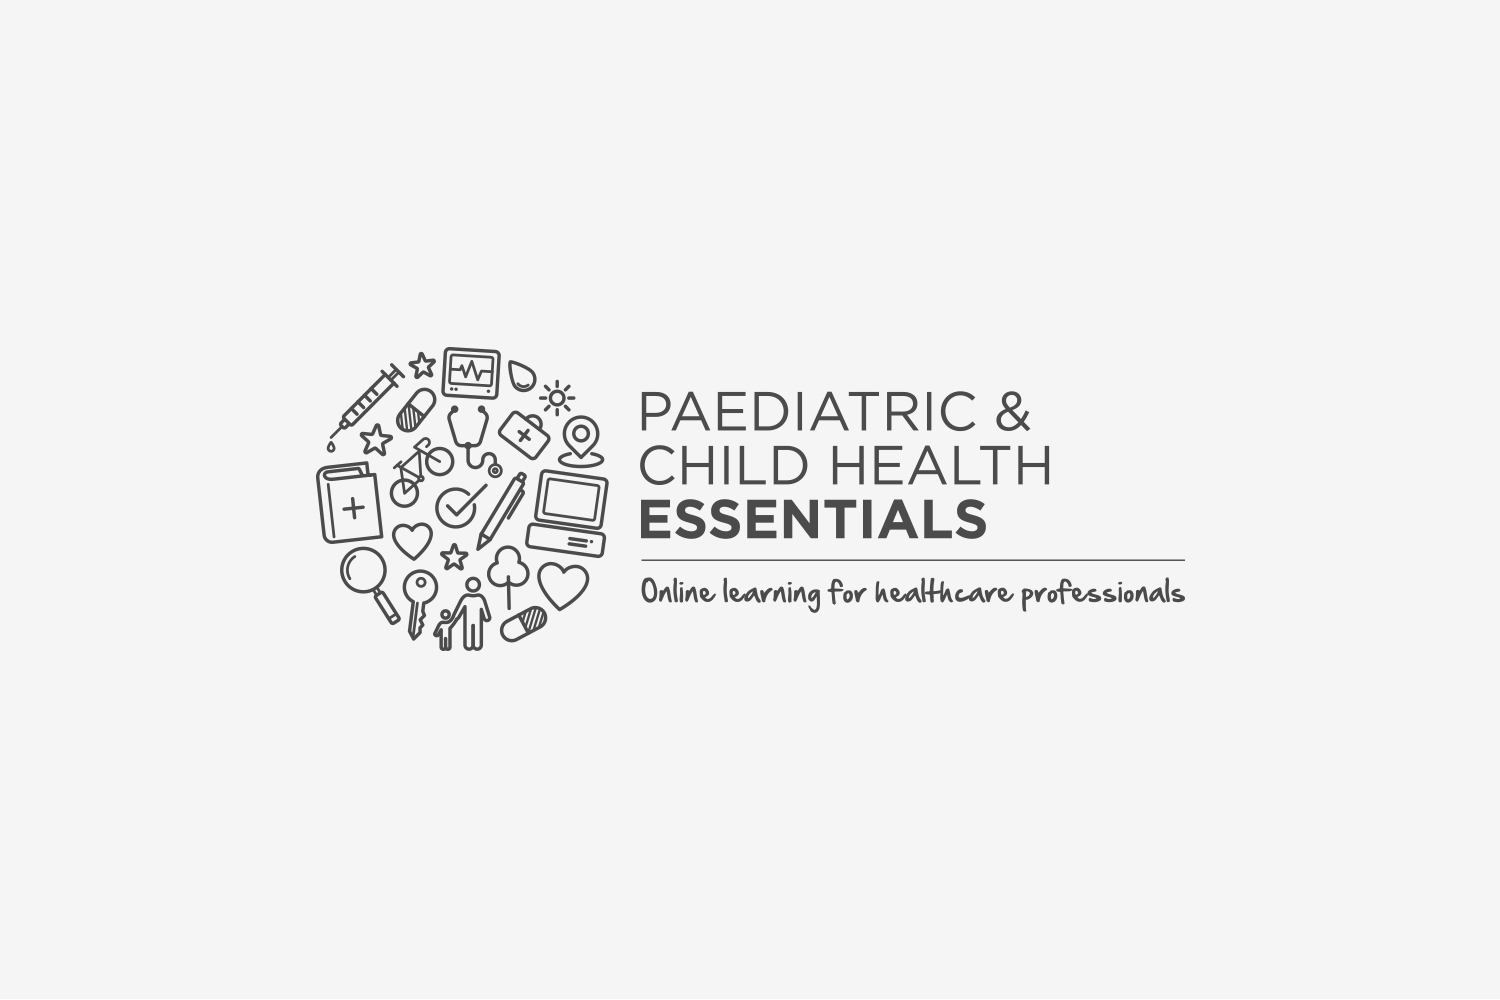 Paediatric_and_Child_Health_Essential_logo.jpg